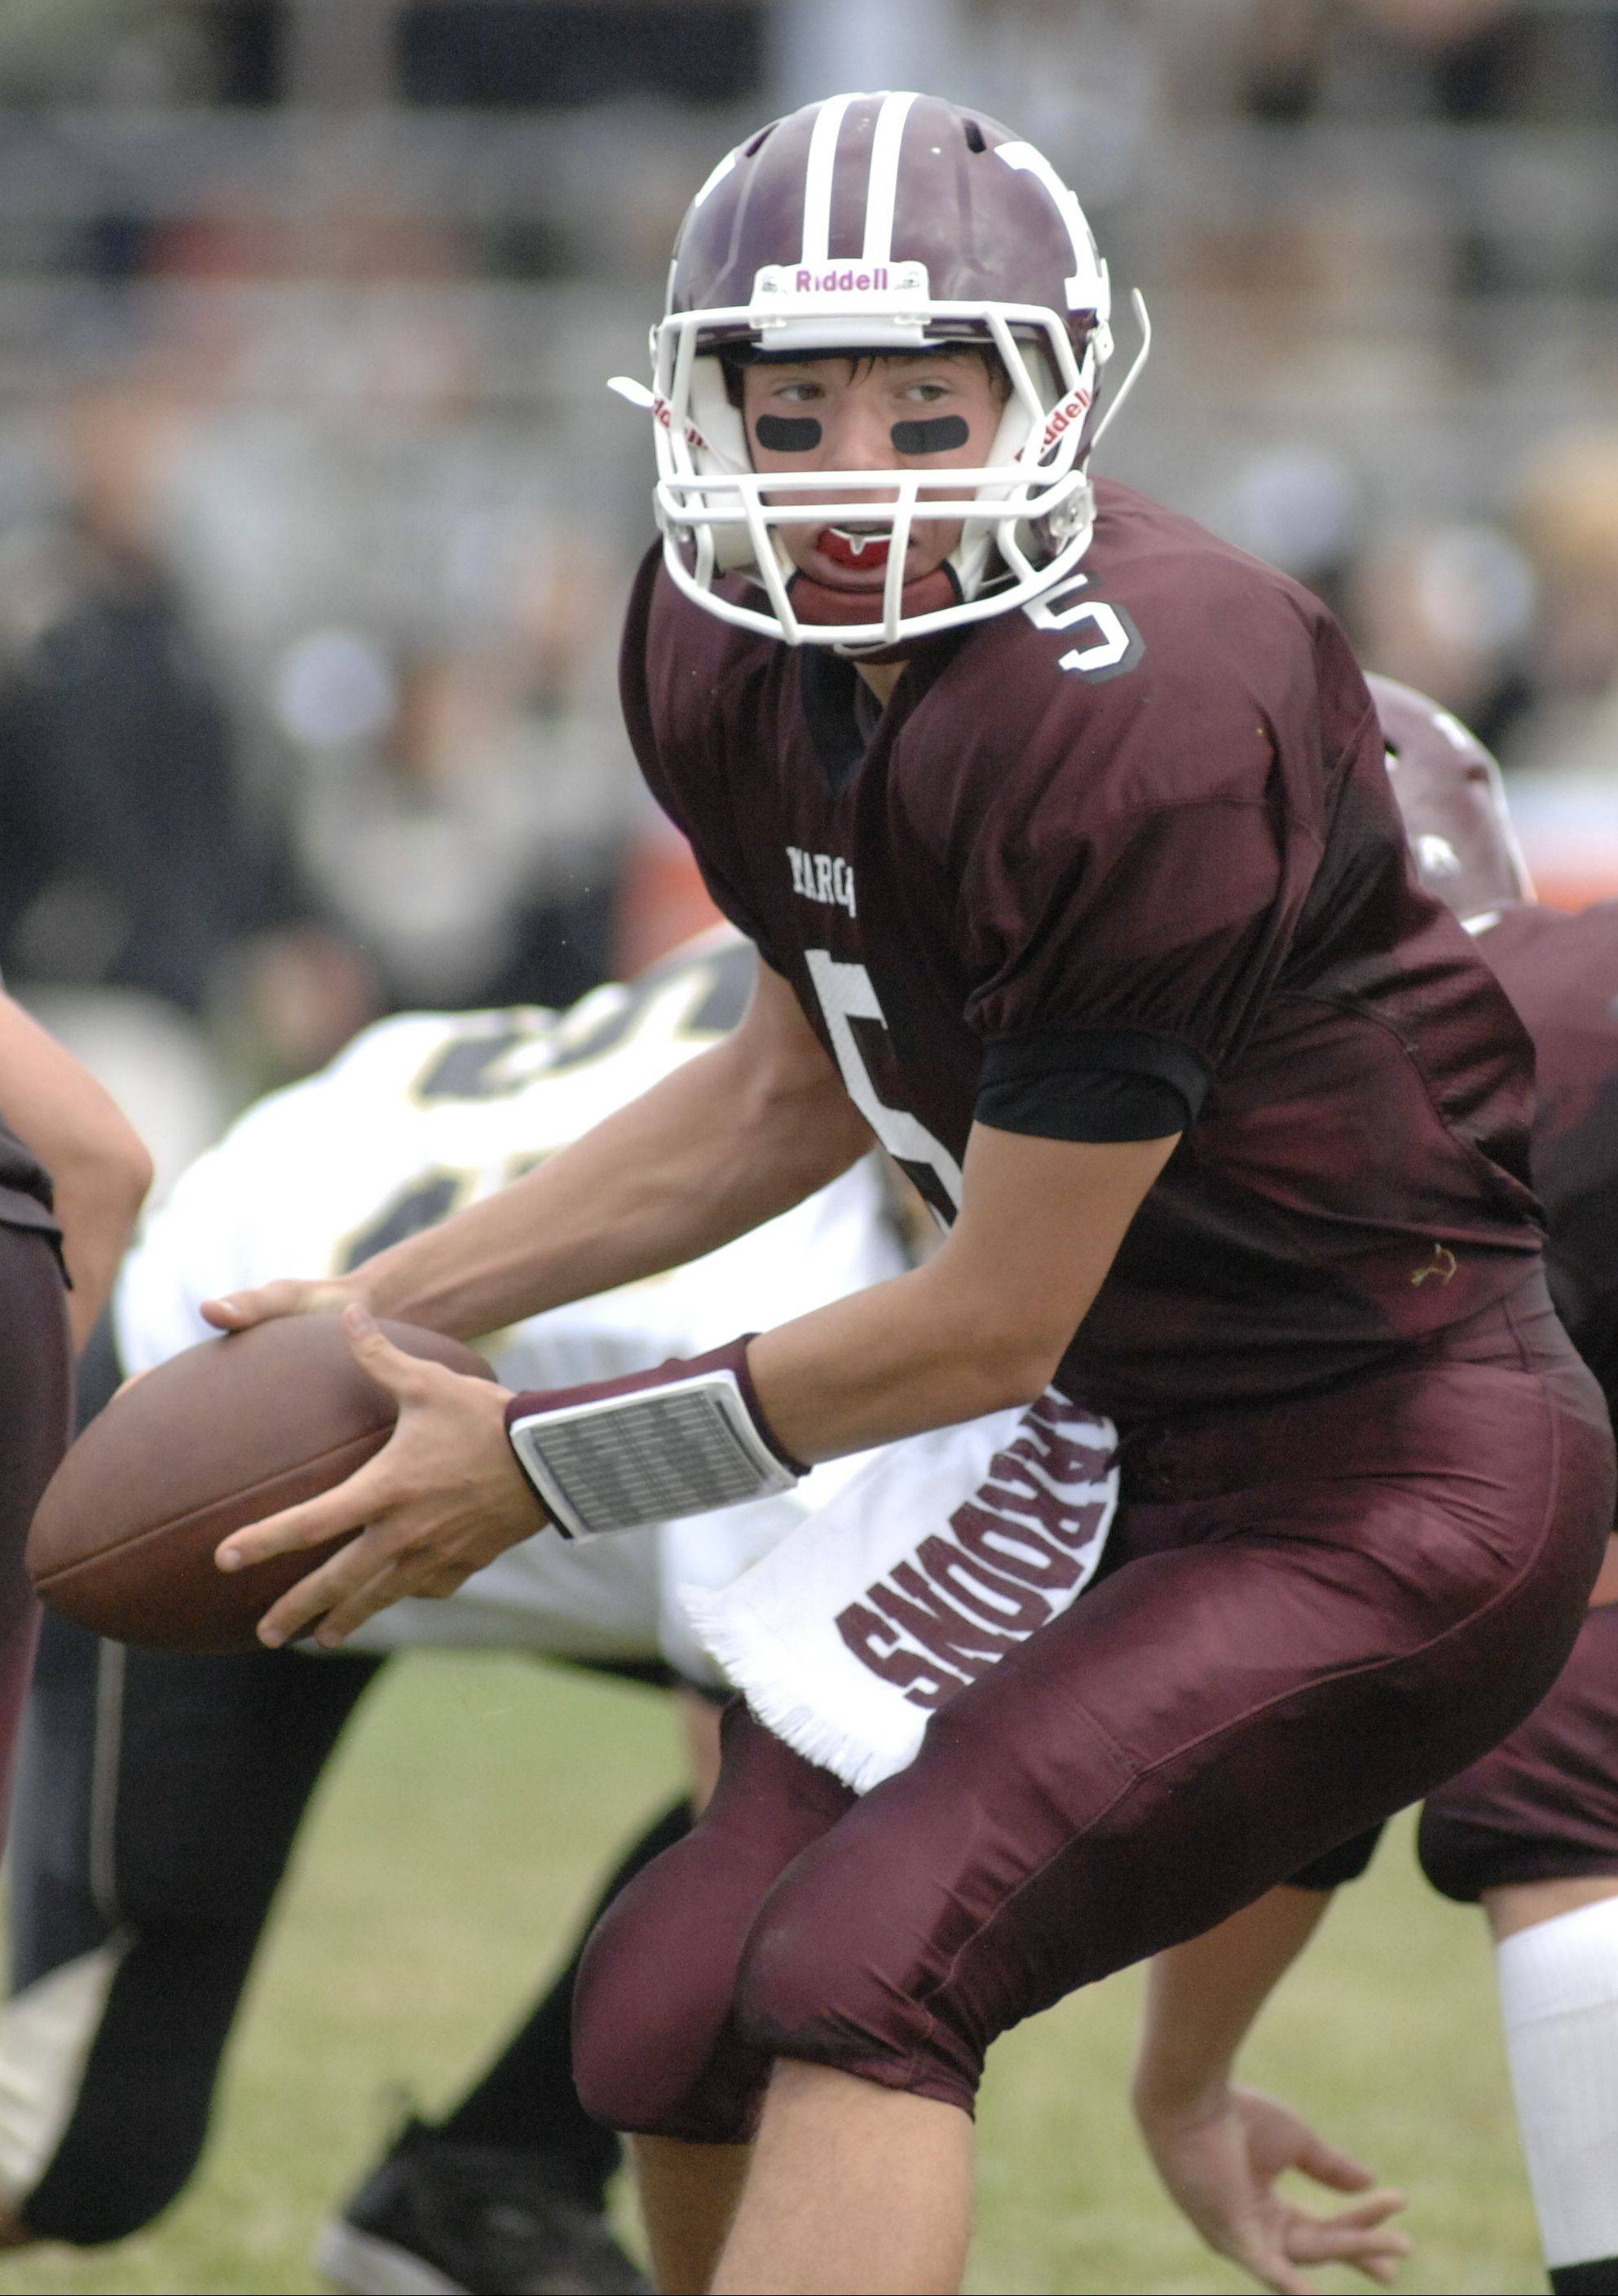 Junior Ryan Sitter takes over the quarterback duties for Elgin this season.